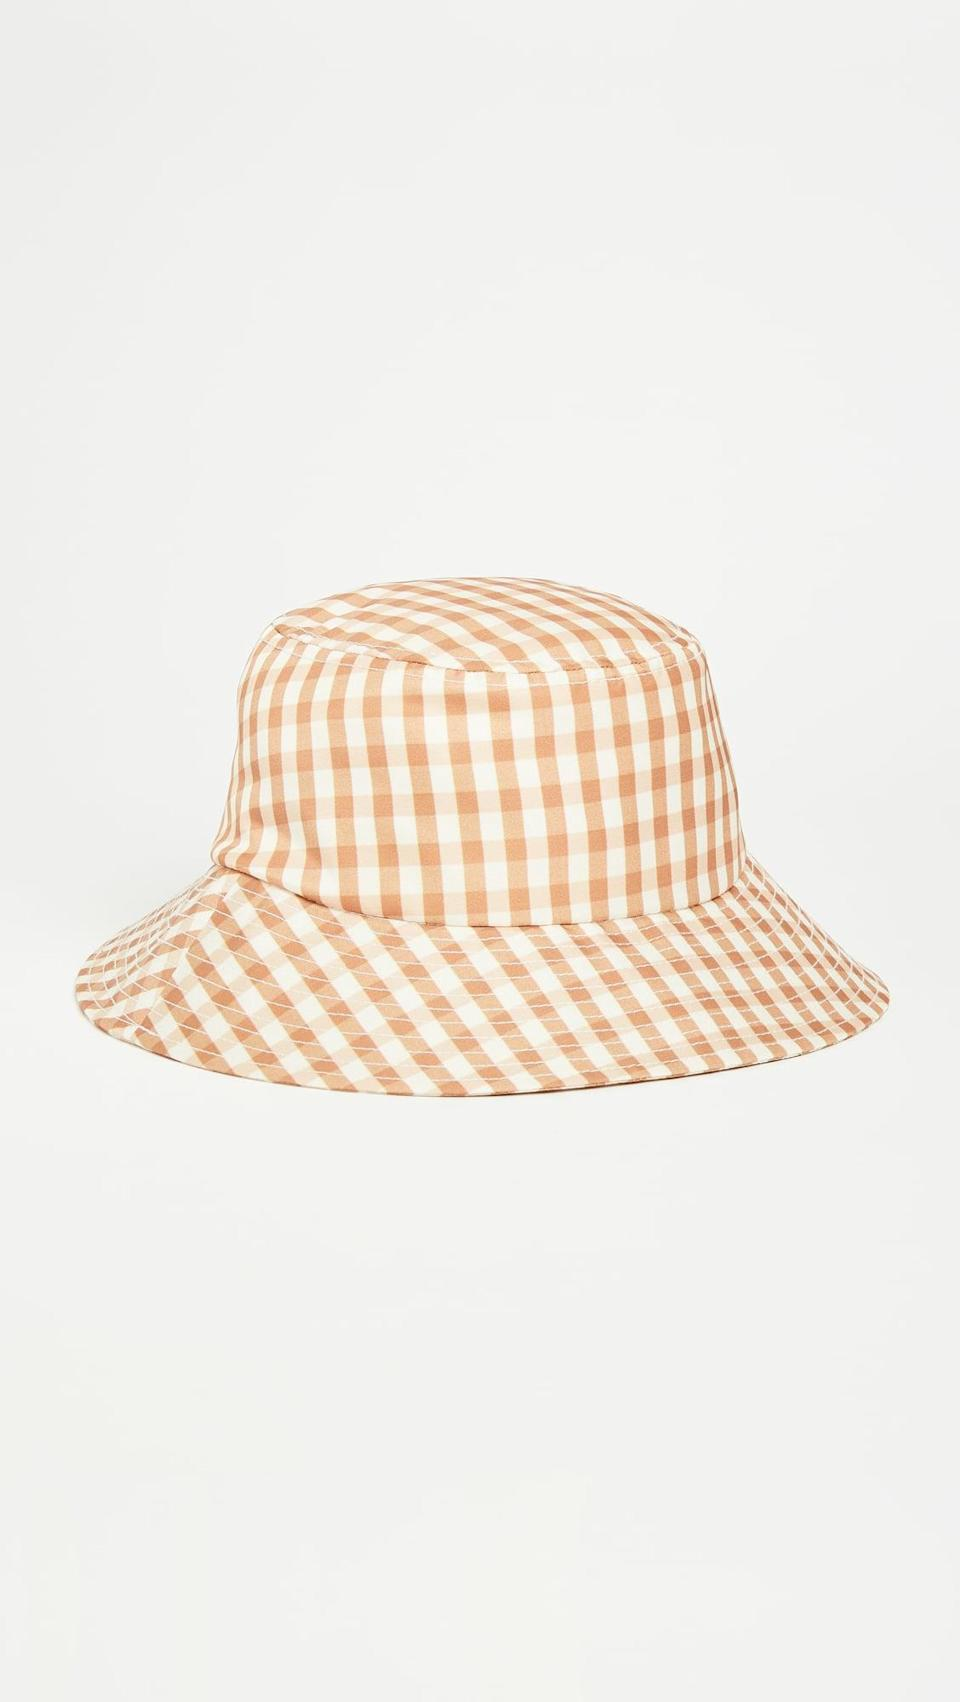 <p>Finish your look with this joyful <span>Loeffler Randall Bucket Hat</span> ($60).</p>